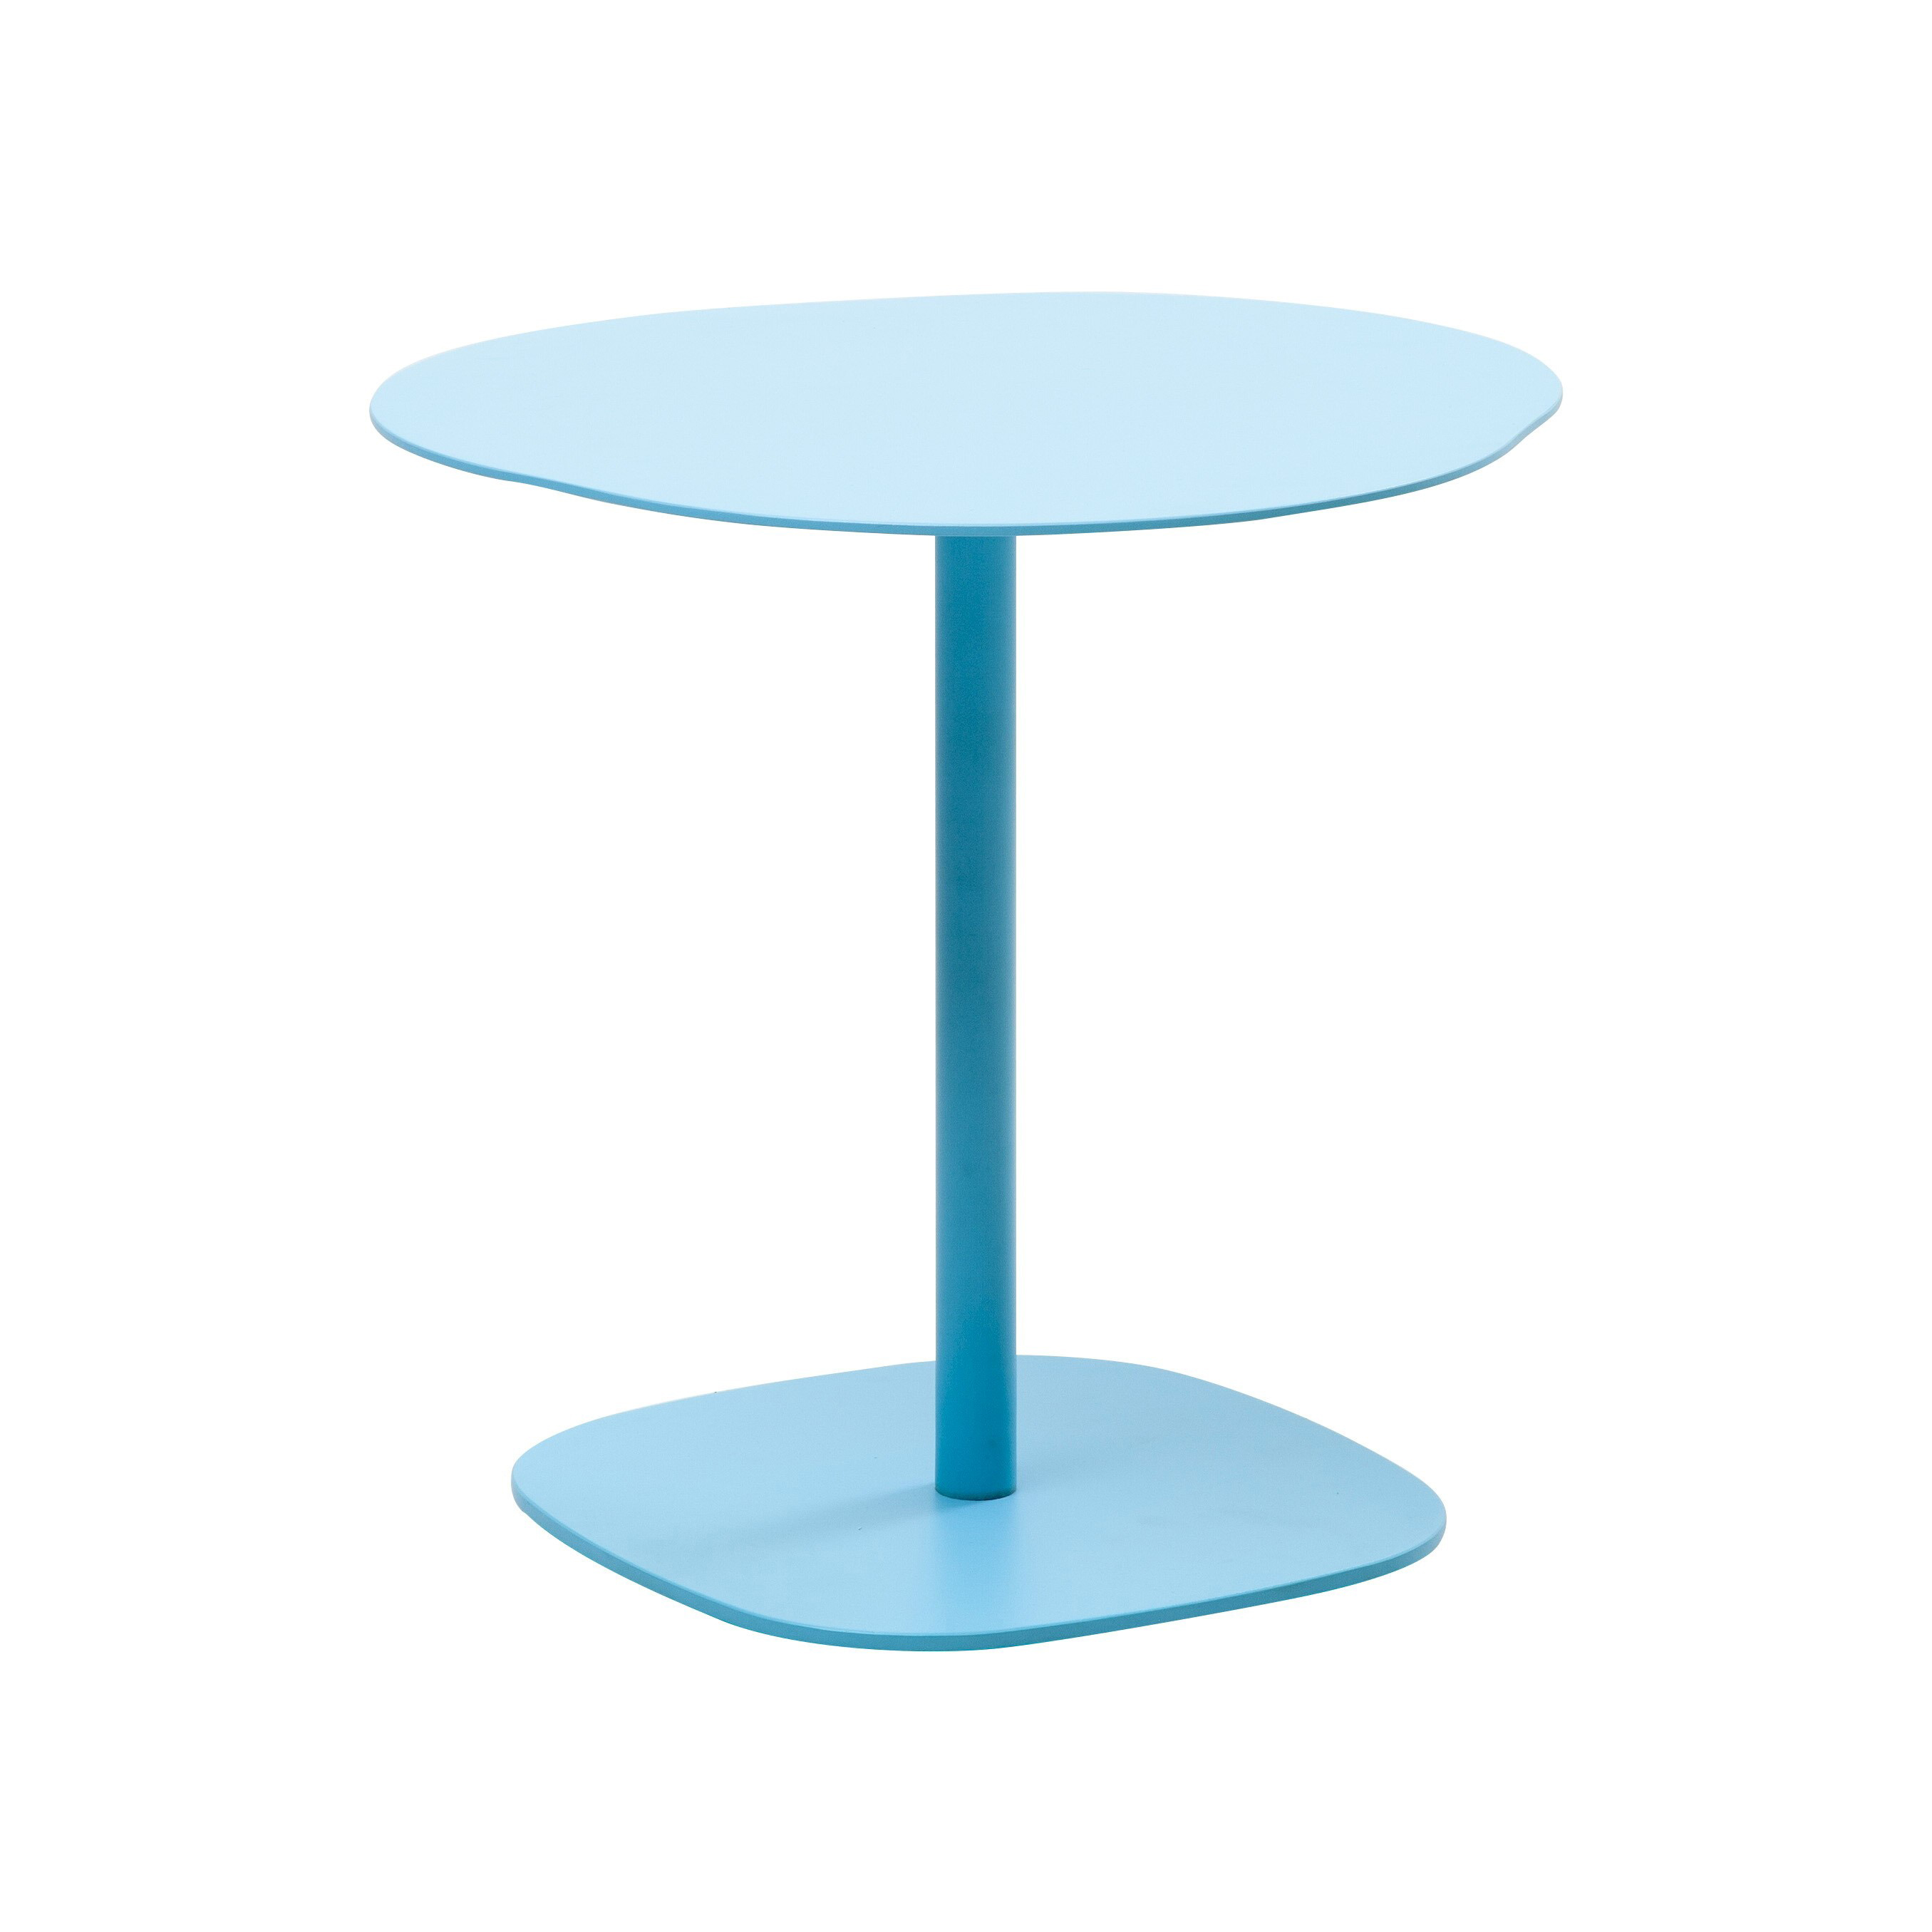 Florida Seating VB ALUMINUM END TABLE sofa seating low table, outdoor